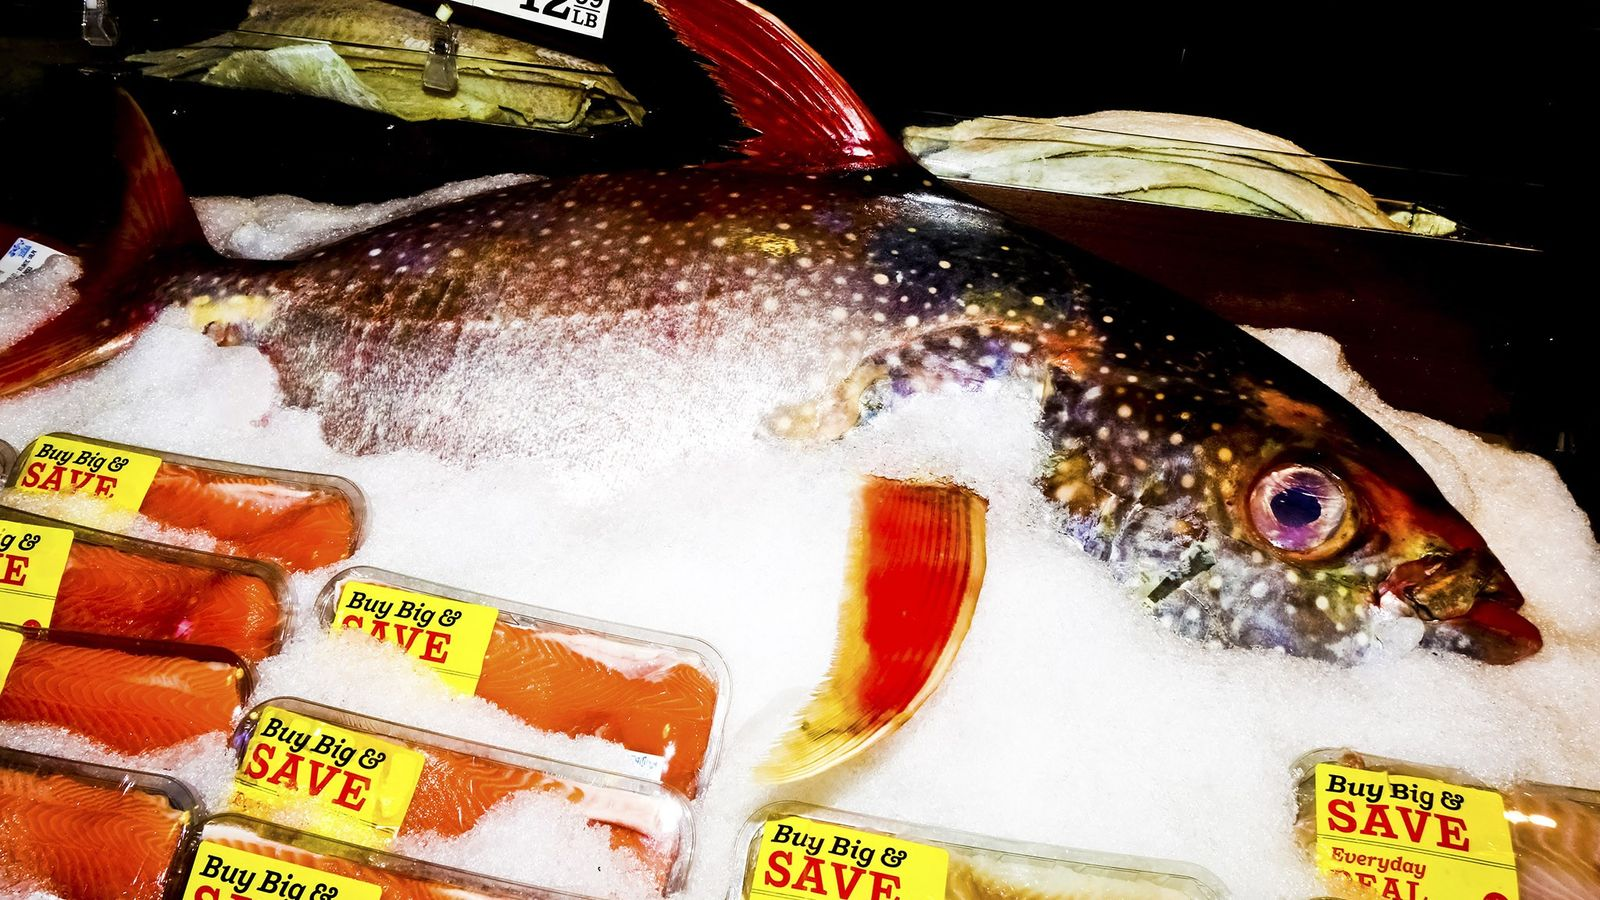 Though markets were one source of mislabeled seafood, fish bought in restaurants were the most likely ...